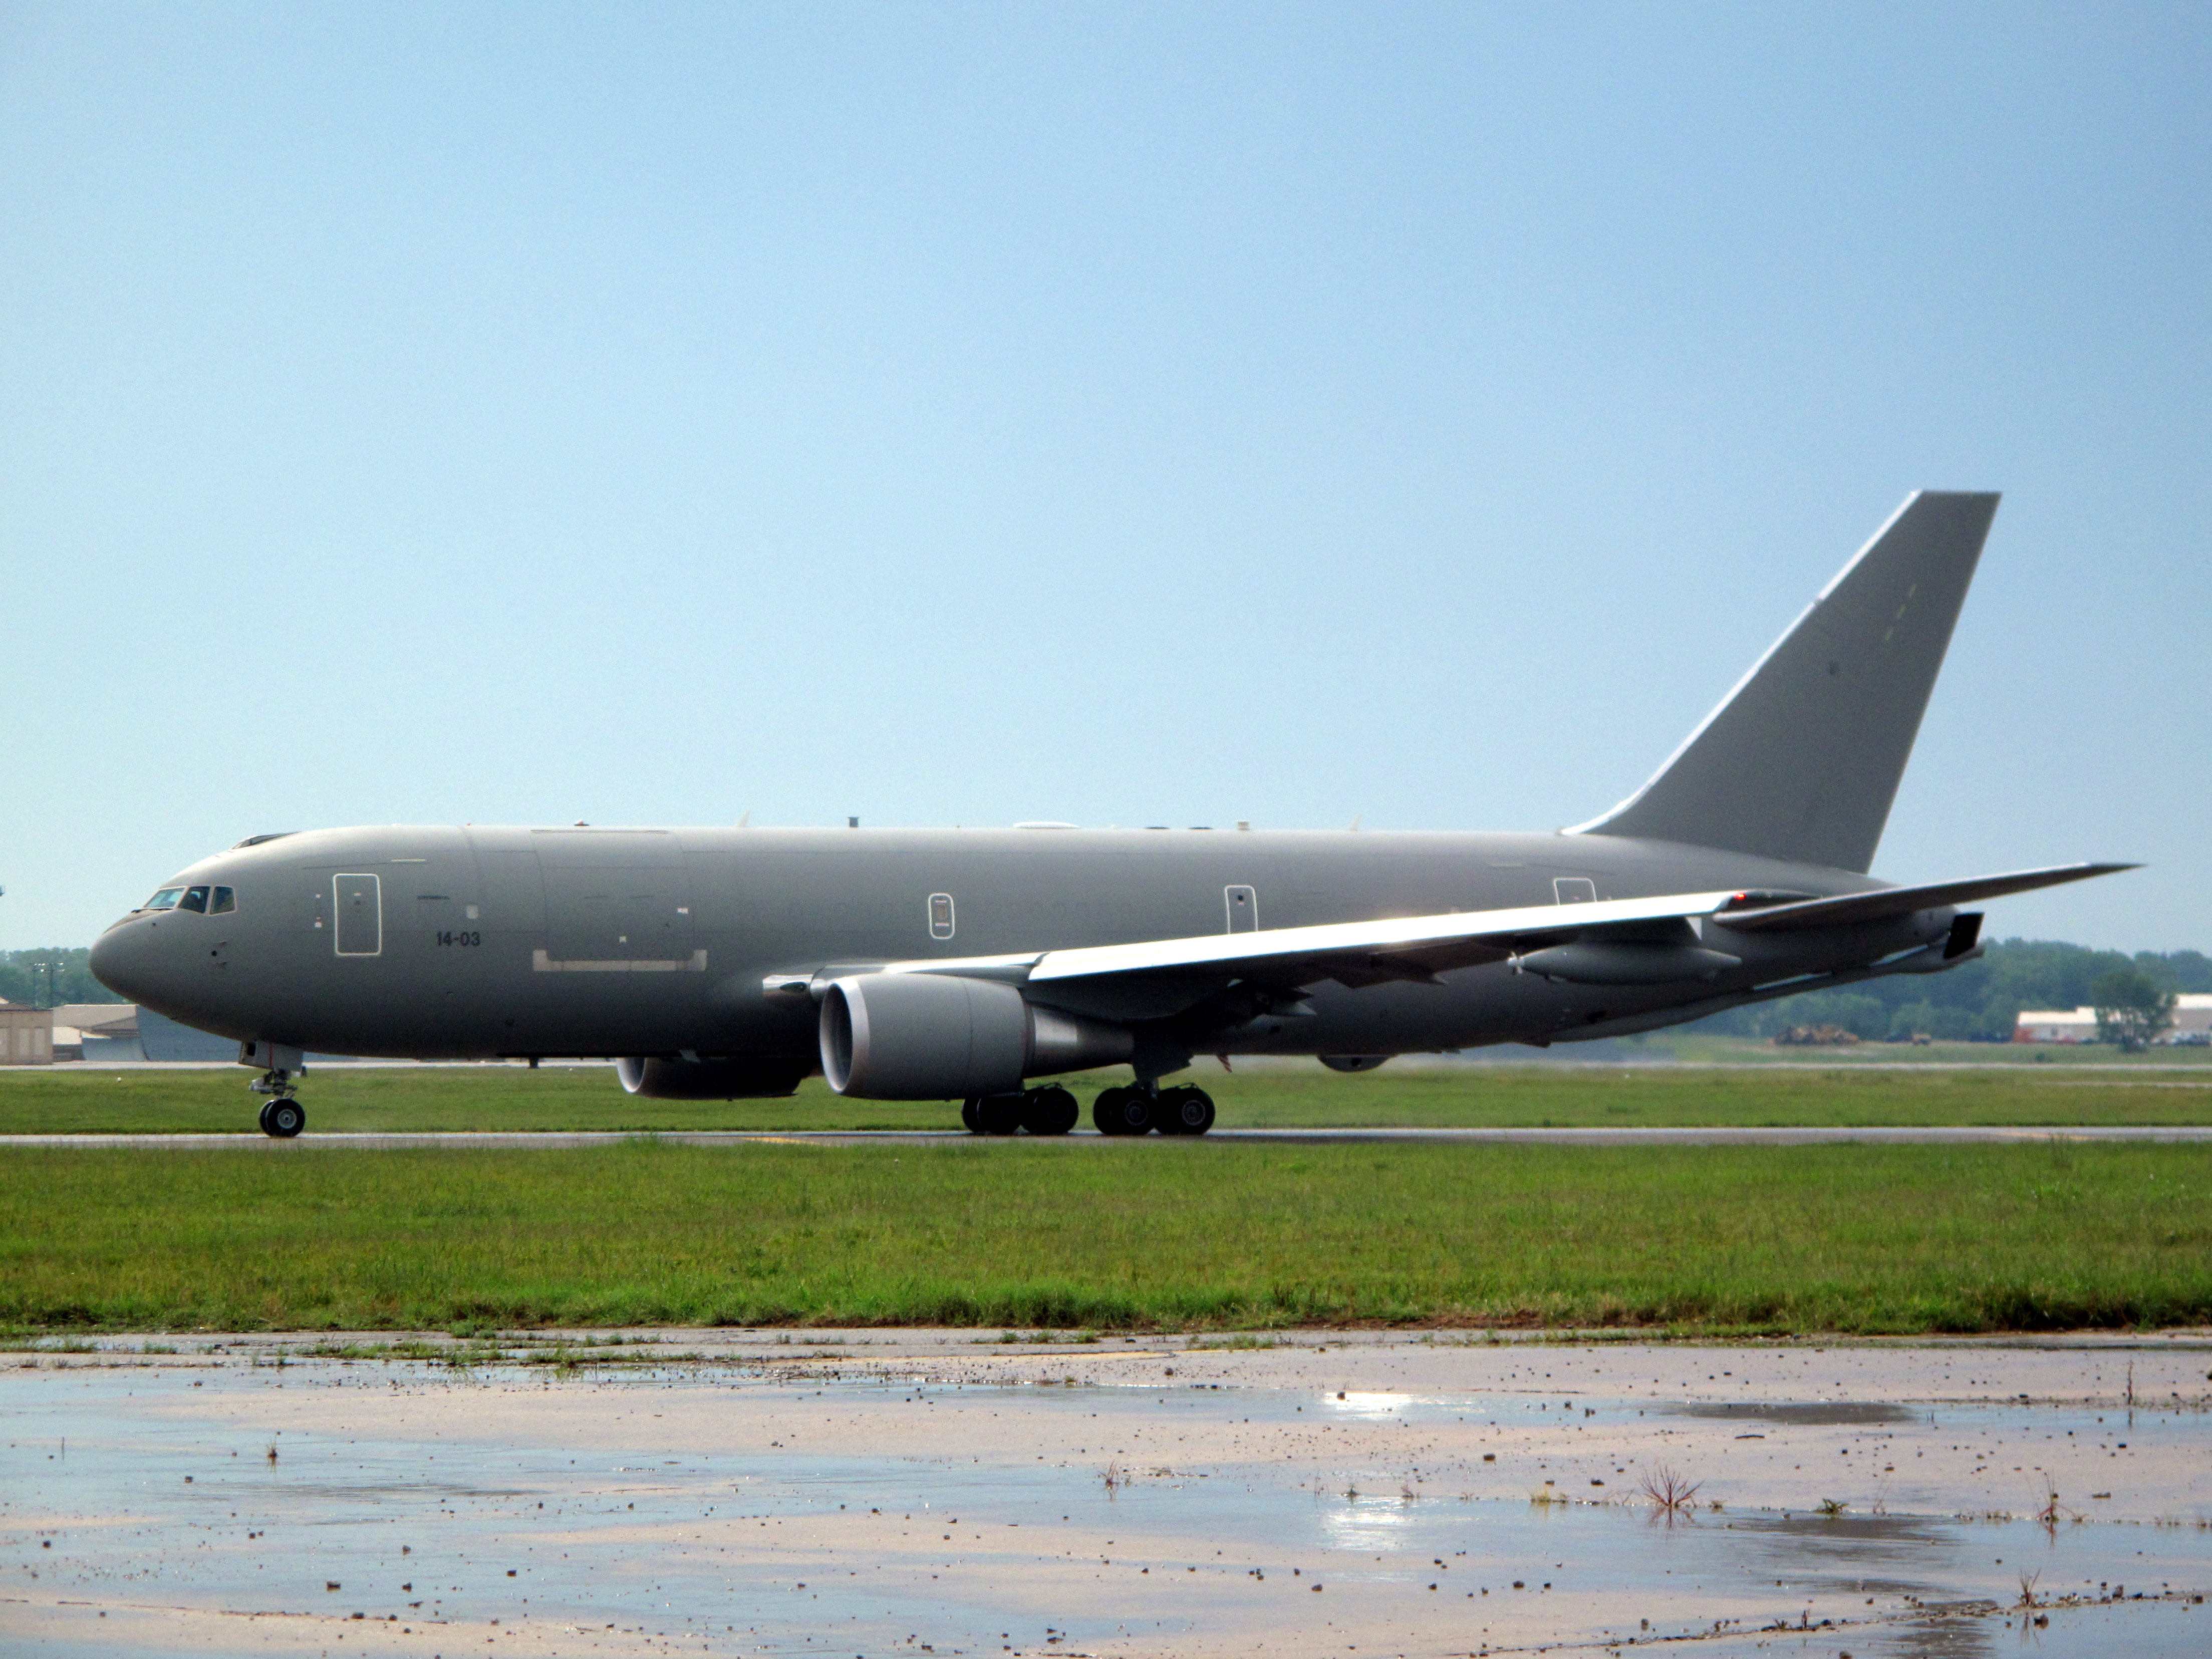 http://upload.wikimedia.org/wikipedia/commons/5/5c/BOEING_KC767_McConnellAFB.JPG